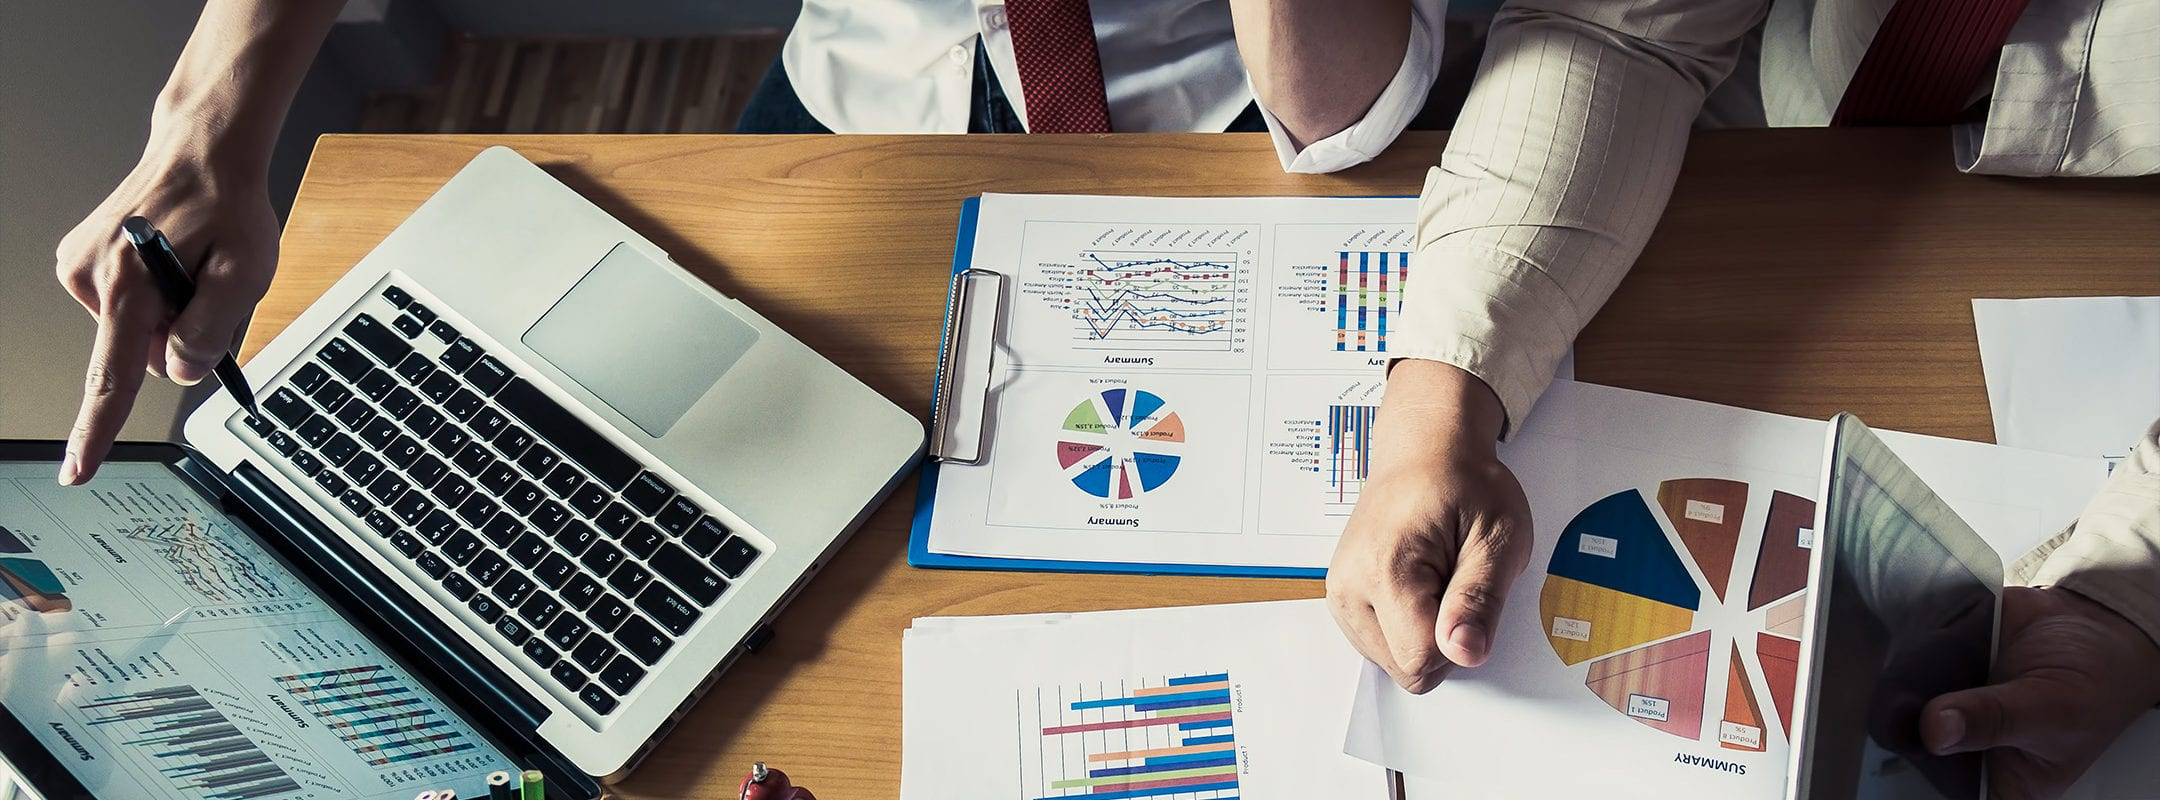 Business person analyzing financial statistics displayed on a desk.